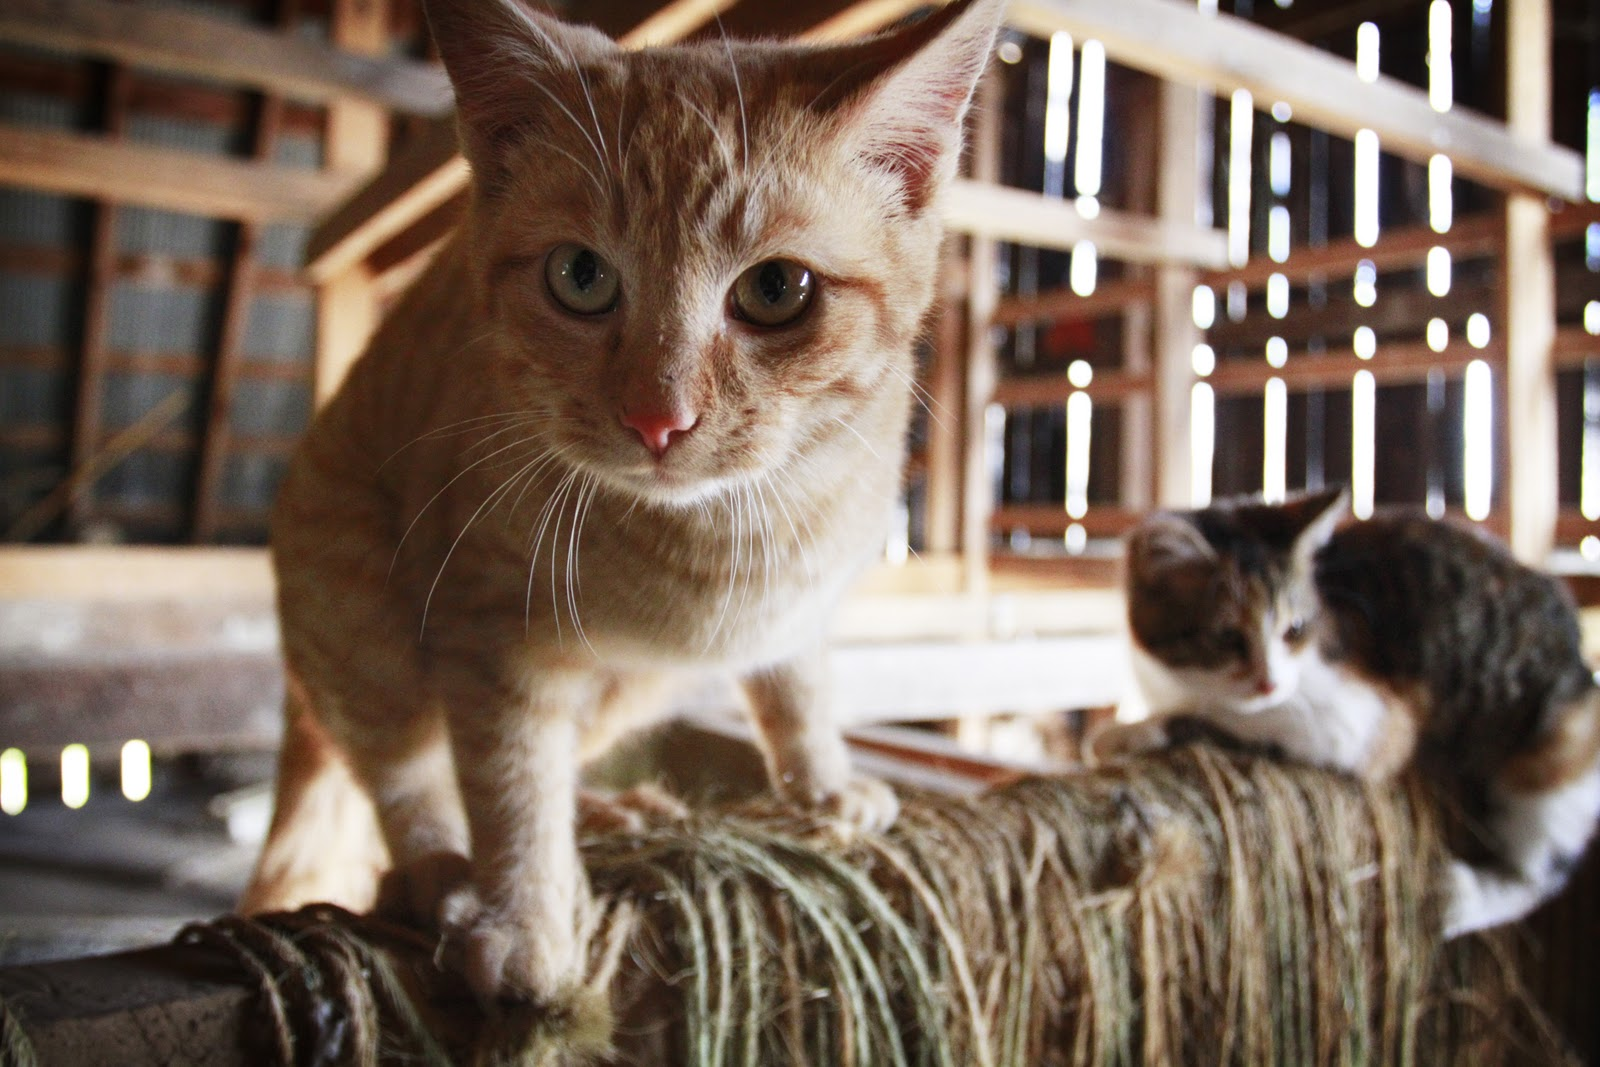 Friends of Powell County's Pets: Barn Kitties to the Rescue!